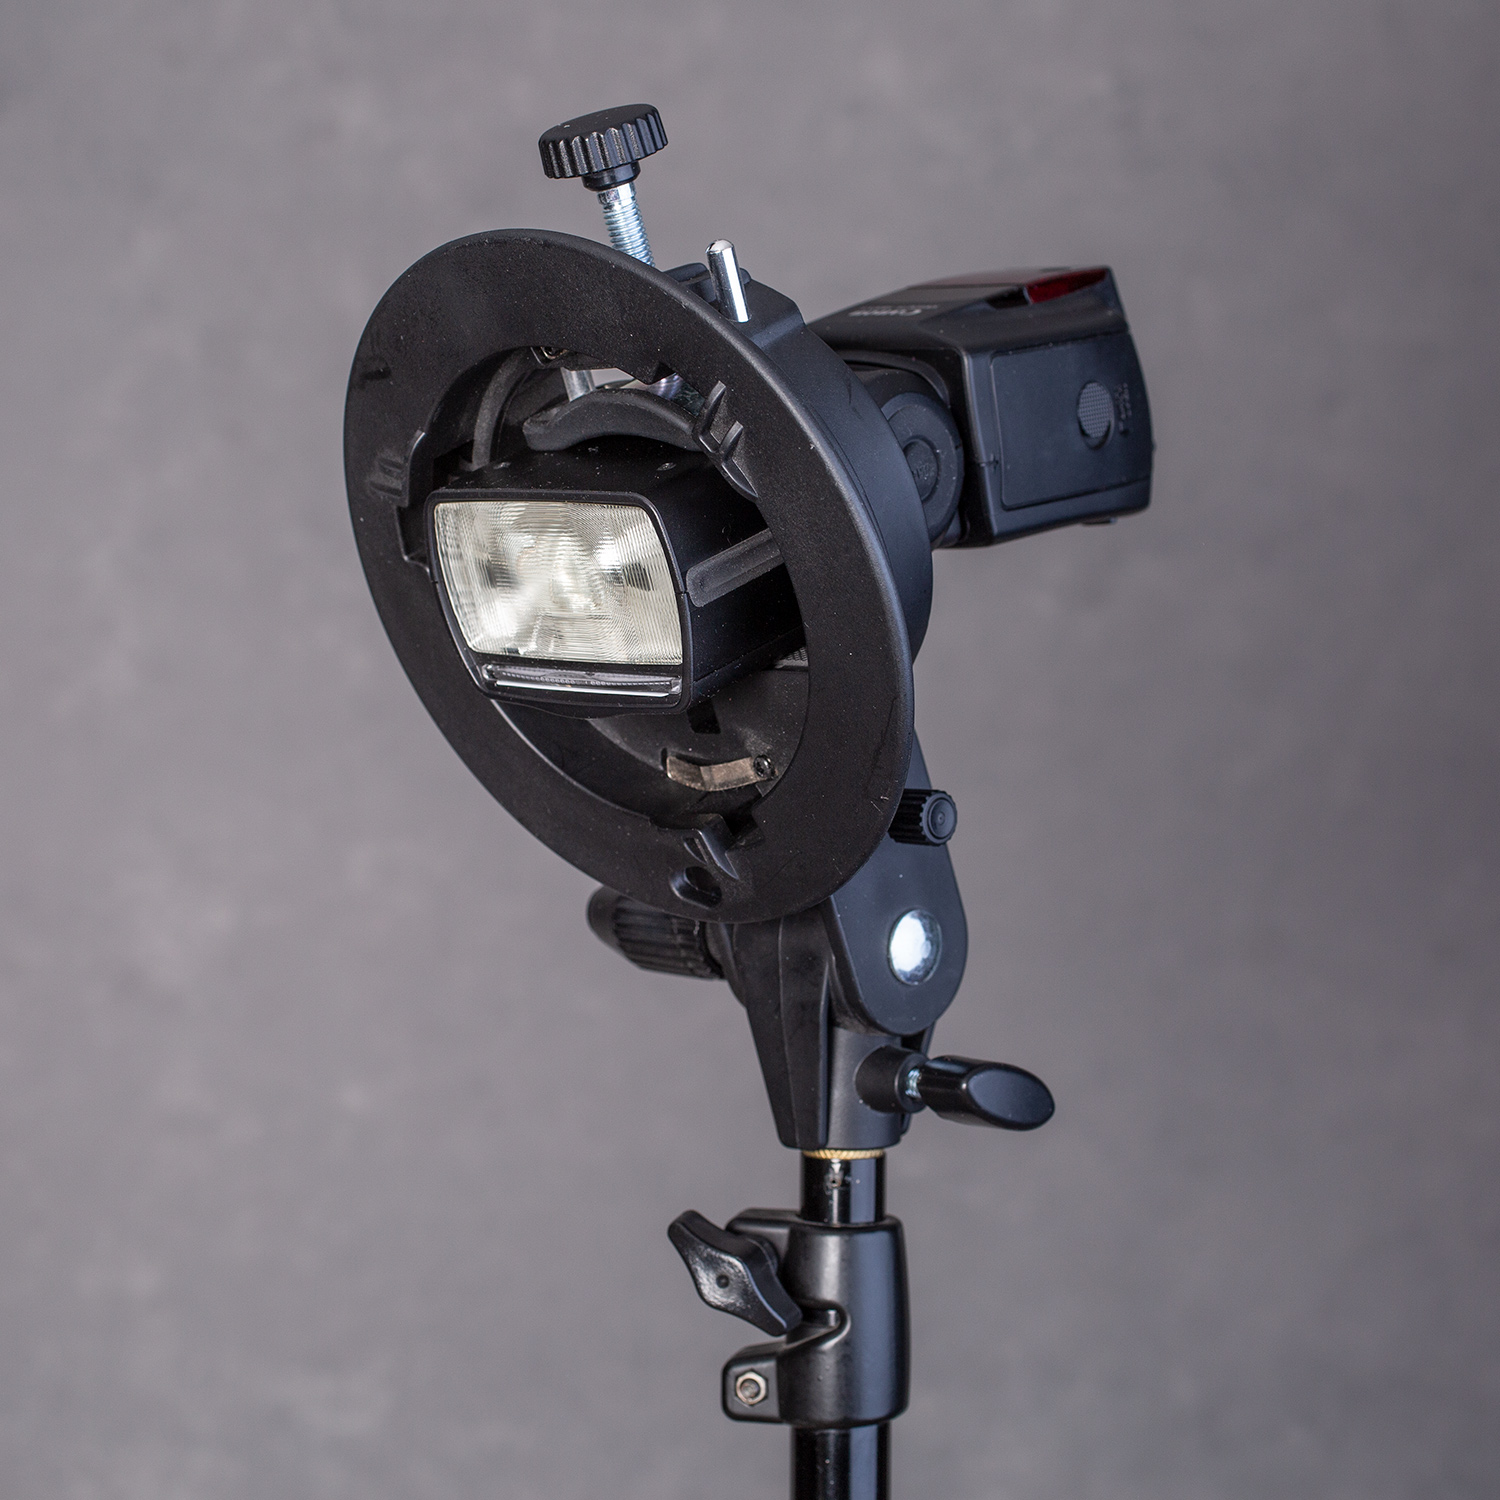 speedlight mounted to a flash stand